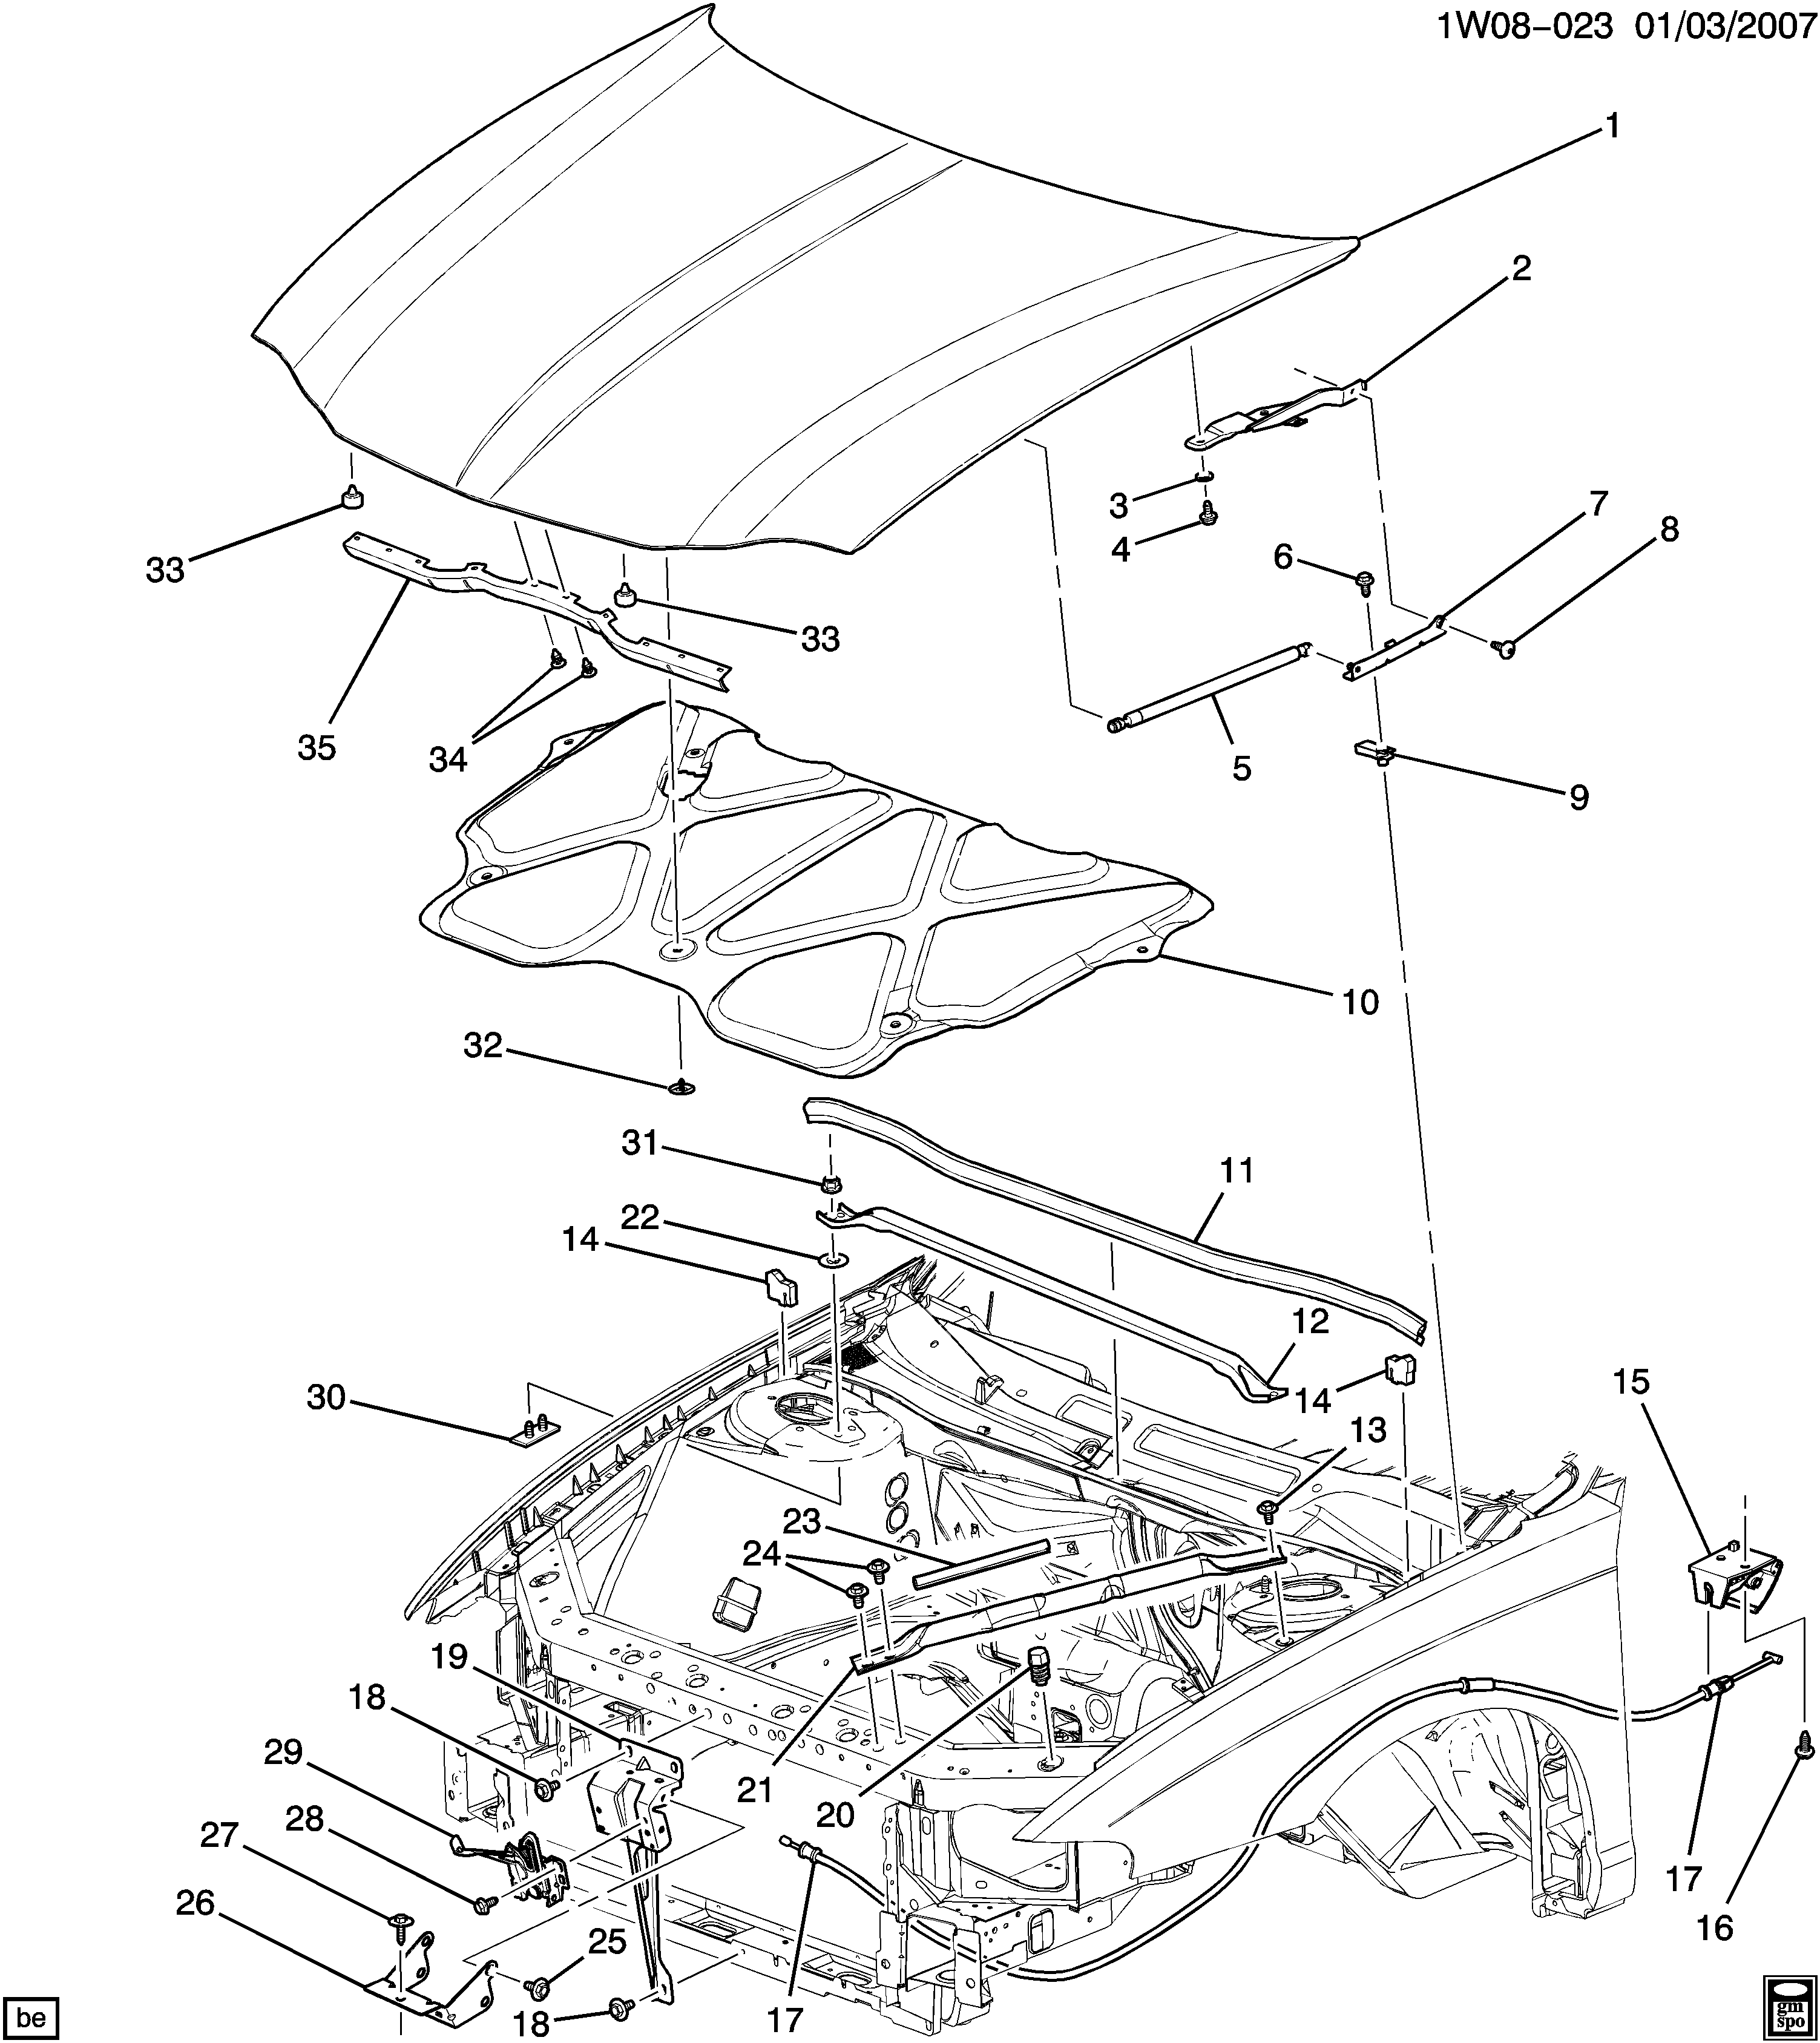 Engine Parts Diagram On Engine Wiring Diagram 2000 Monte Carlo Ss 3 8